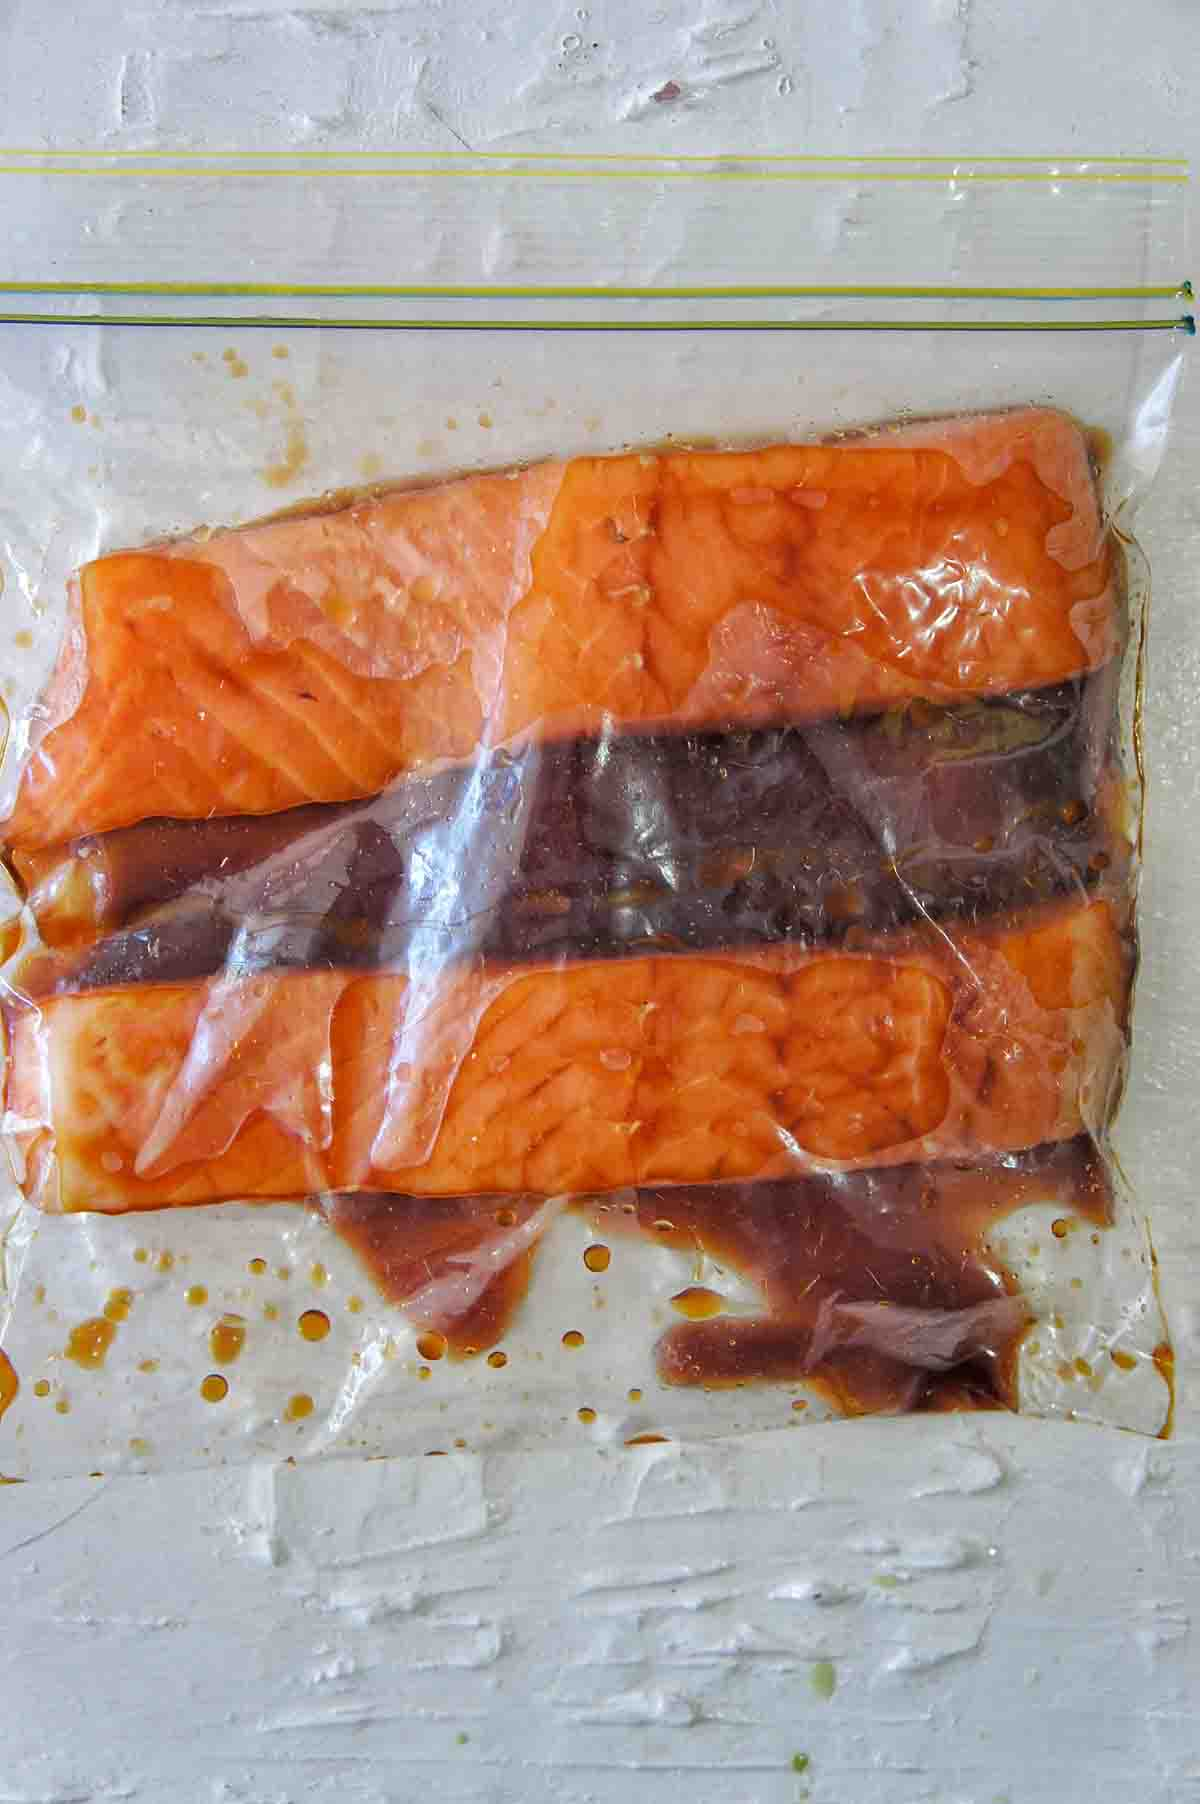 Salmon fillets marinading in a zip lock bag